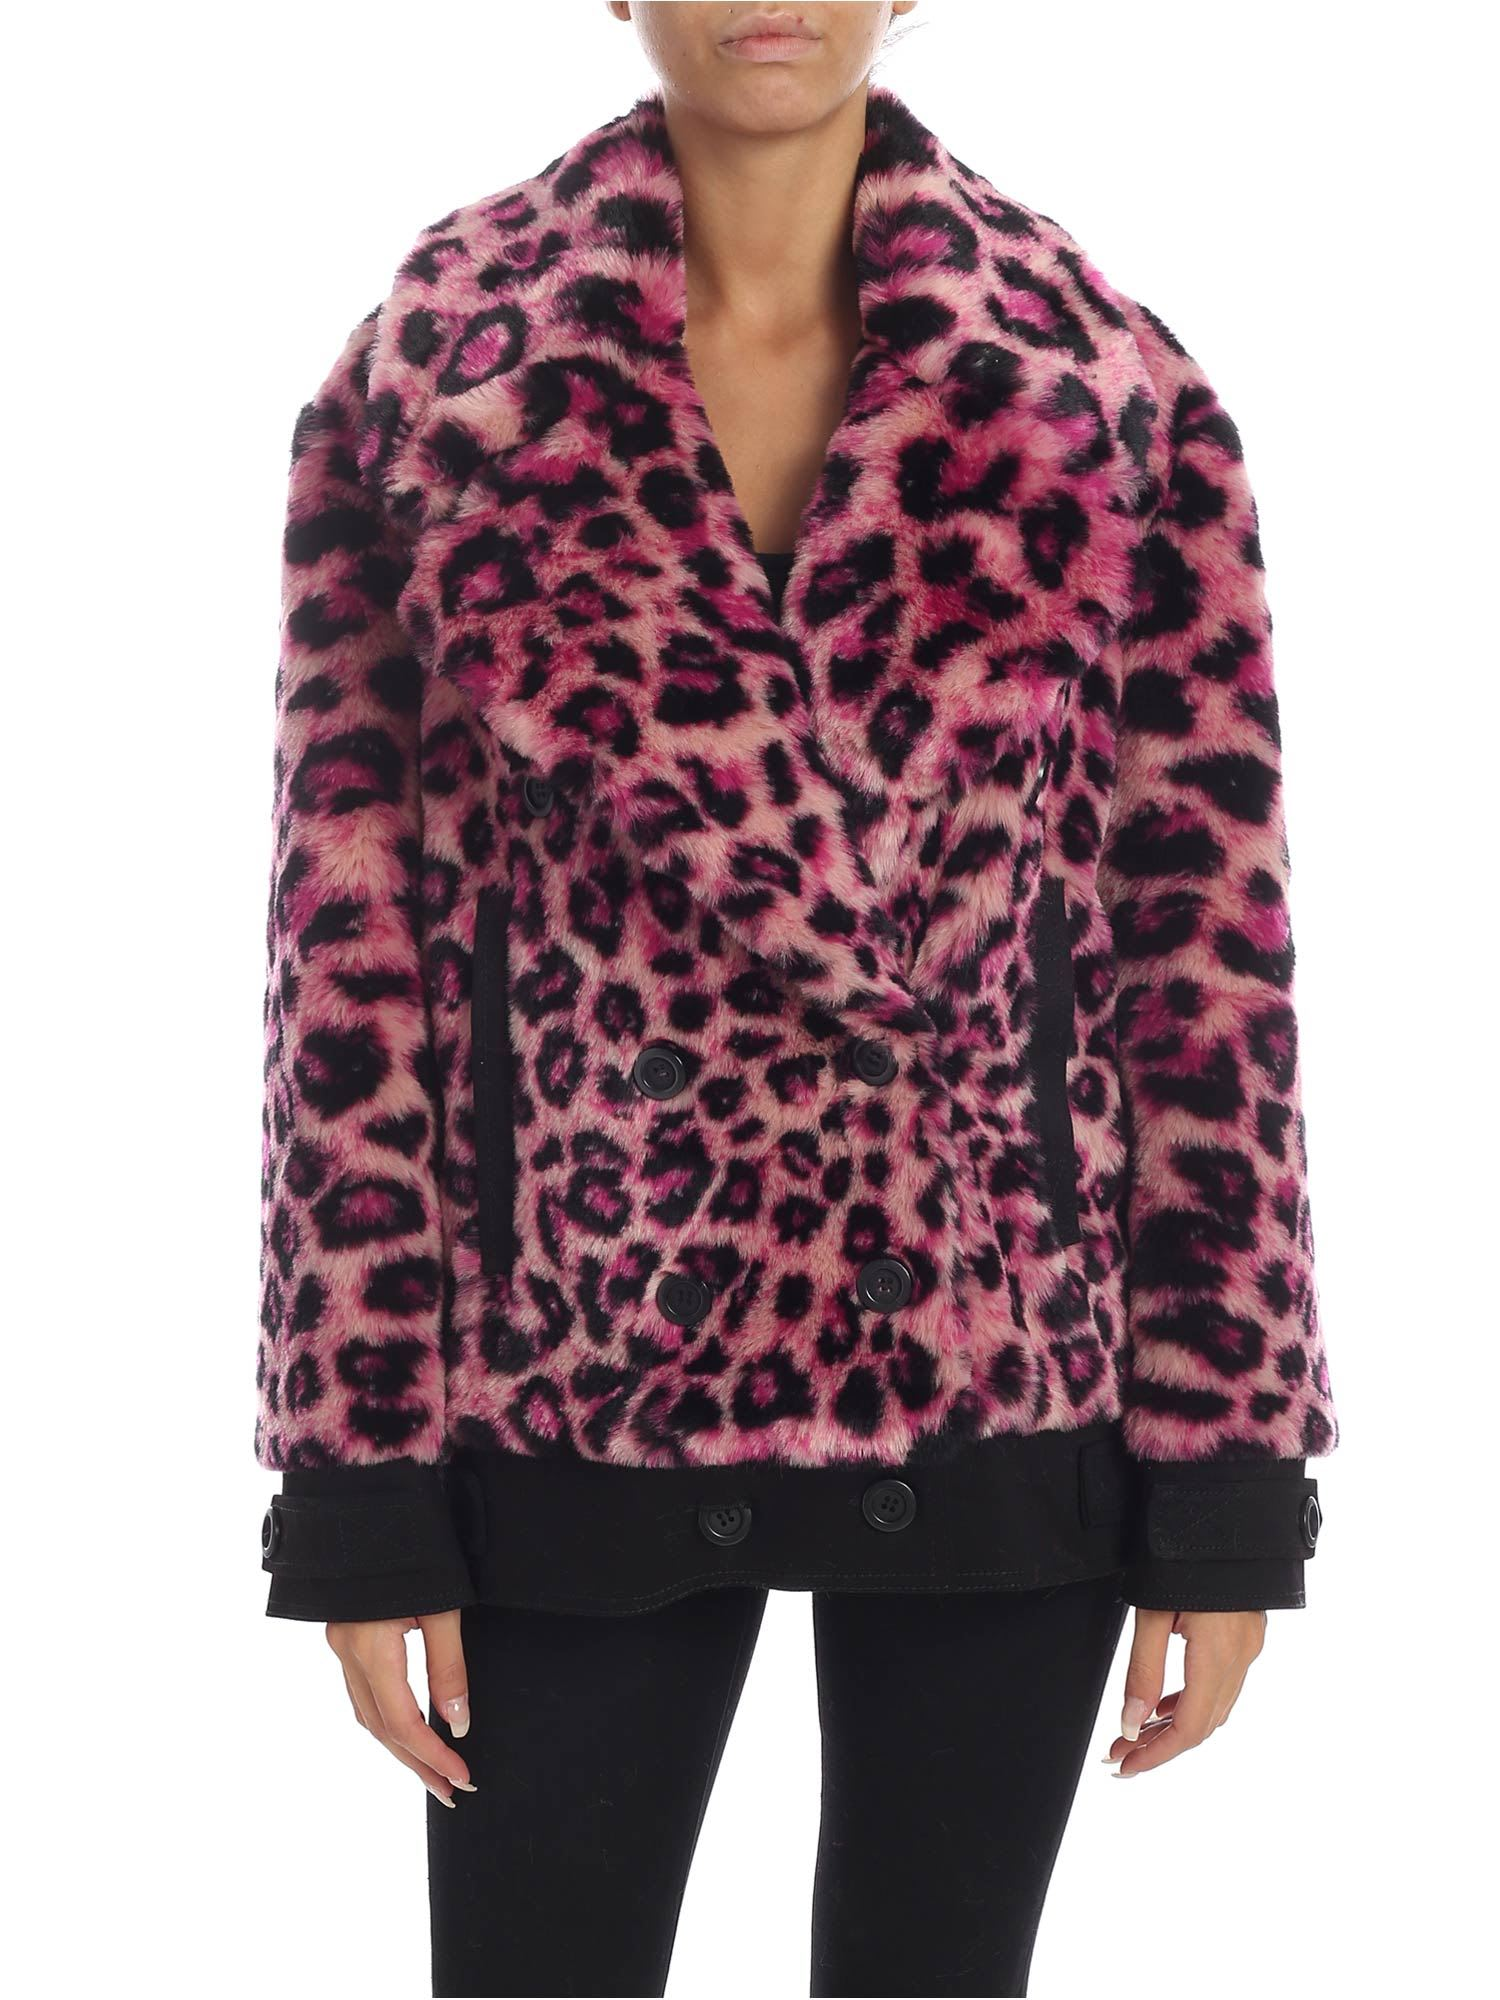 Alberta Ferretti – Animal-print Eco-fur